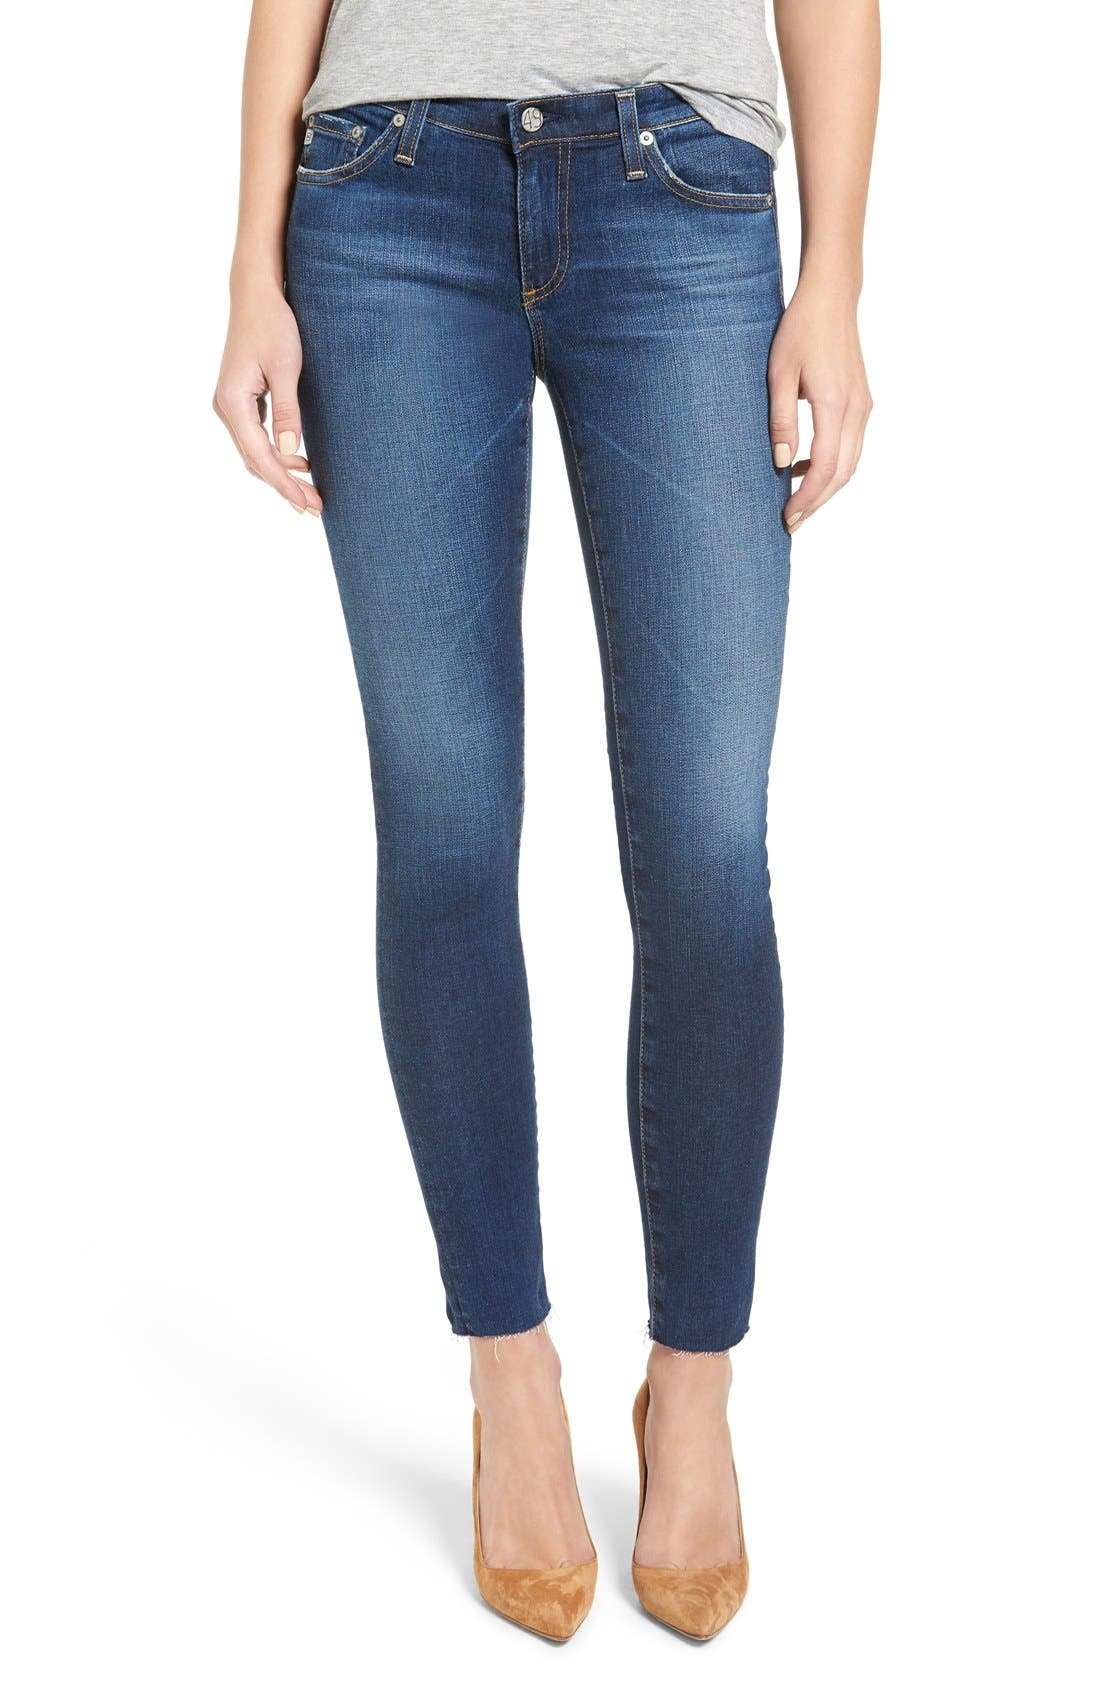 Alternate Image 1 Selected - AG 'The Legging' Ankle Jeans (7 Year Break with Raw Hem)